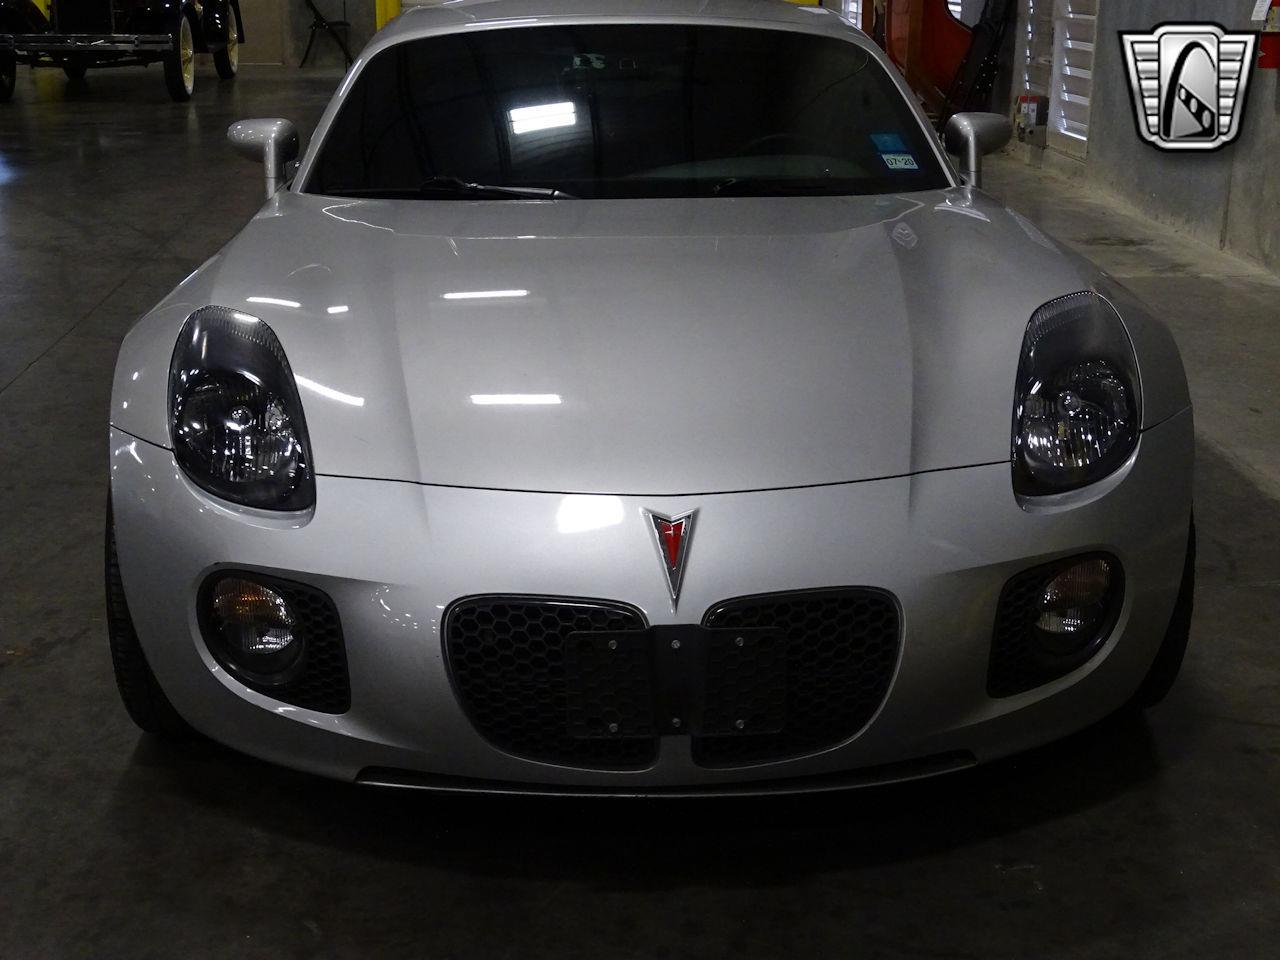 2009 Pontiac Solstice (CC-1345327) for sale in O'Fallon, Illinois